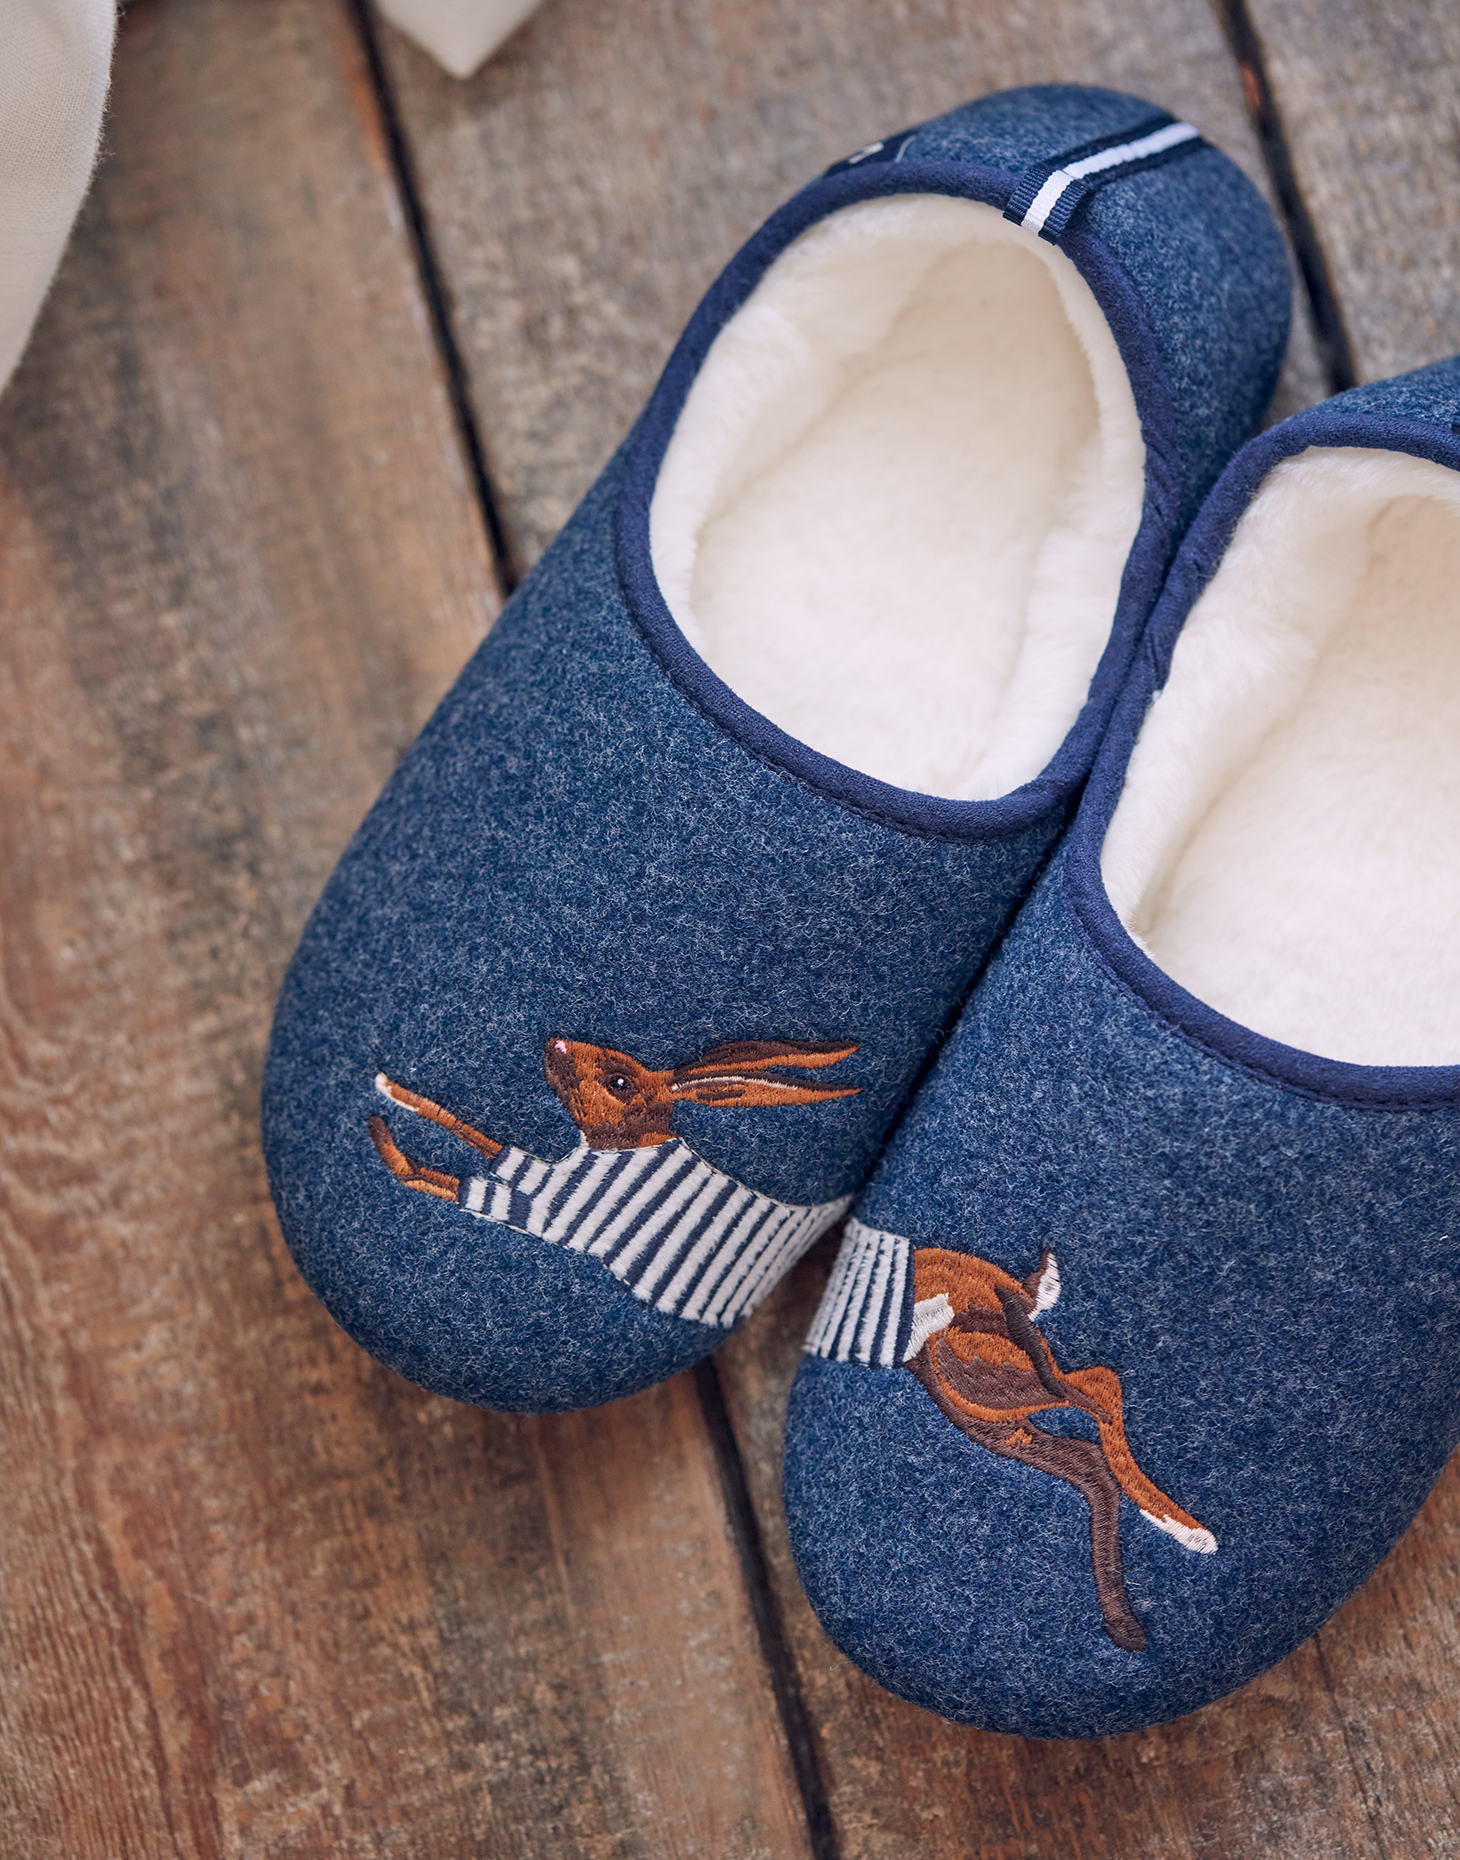 A pair of blue slippers with a hare embroidered on them.